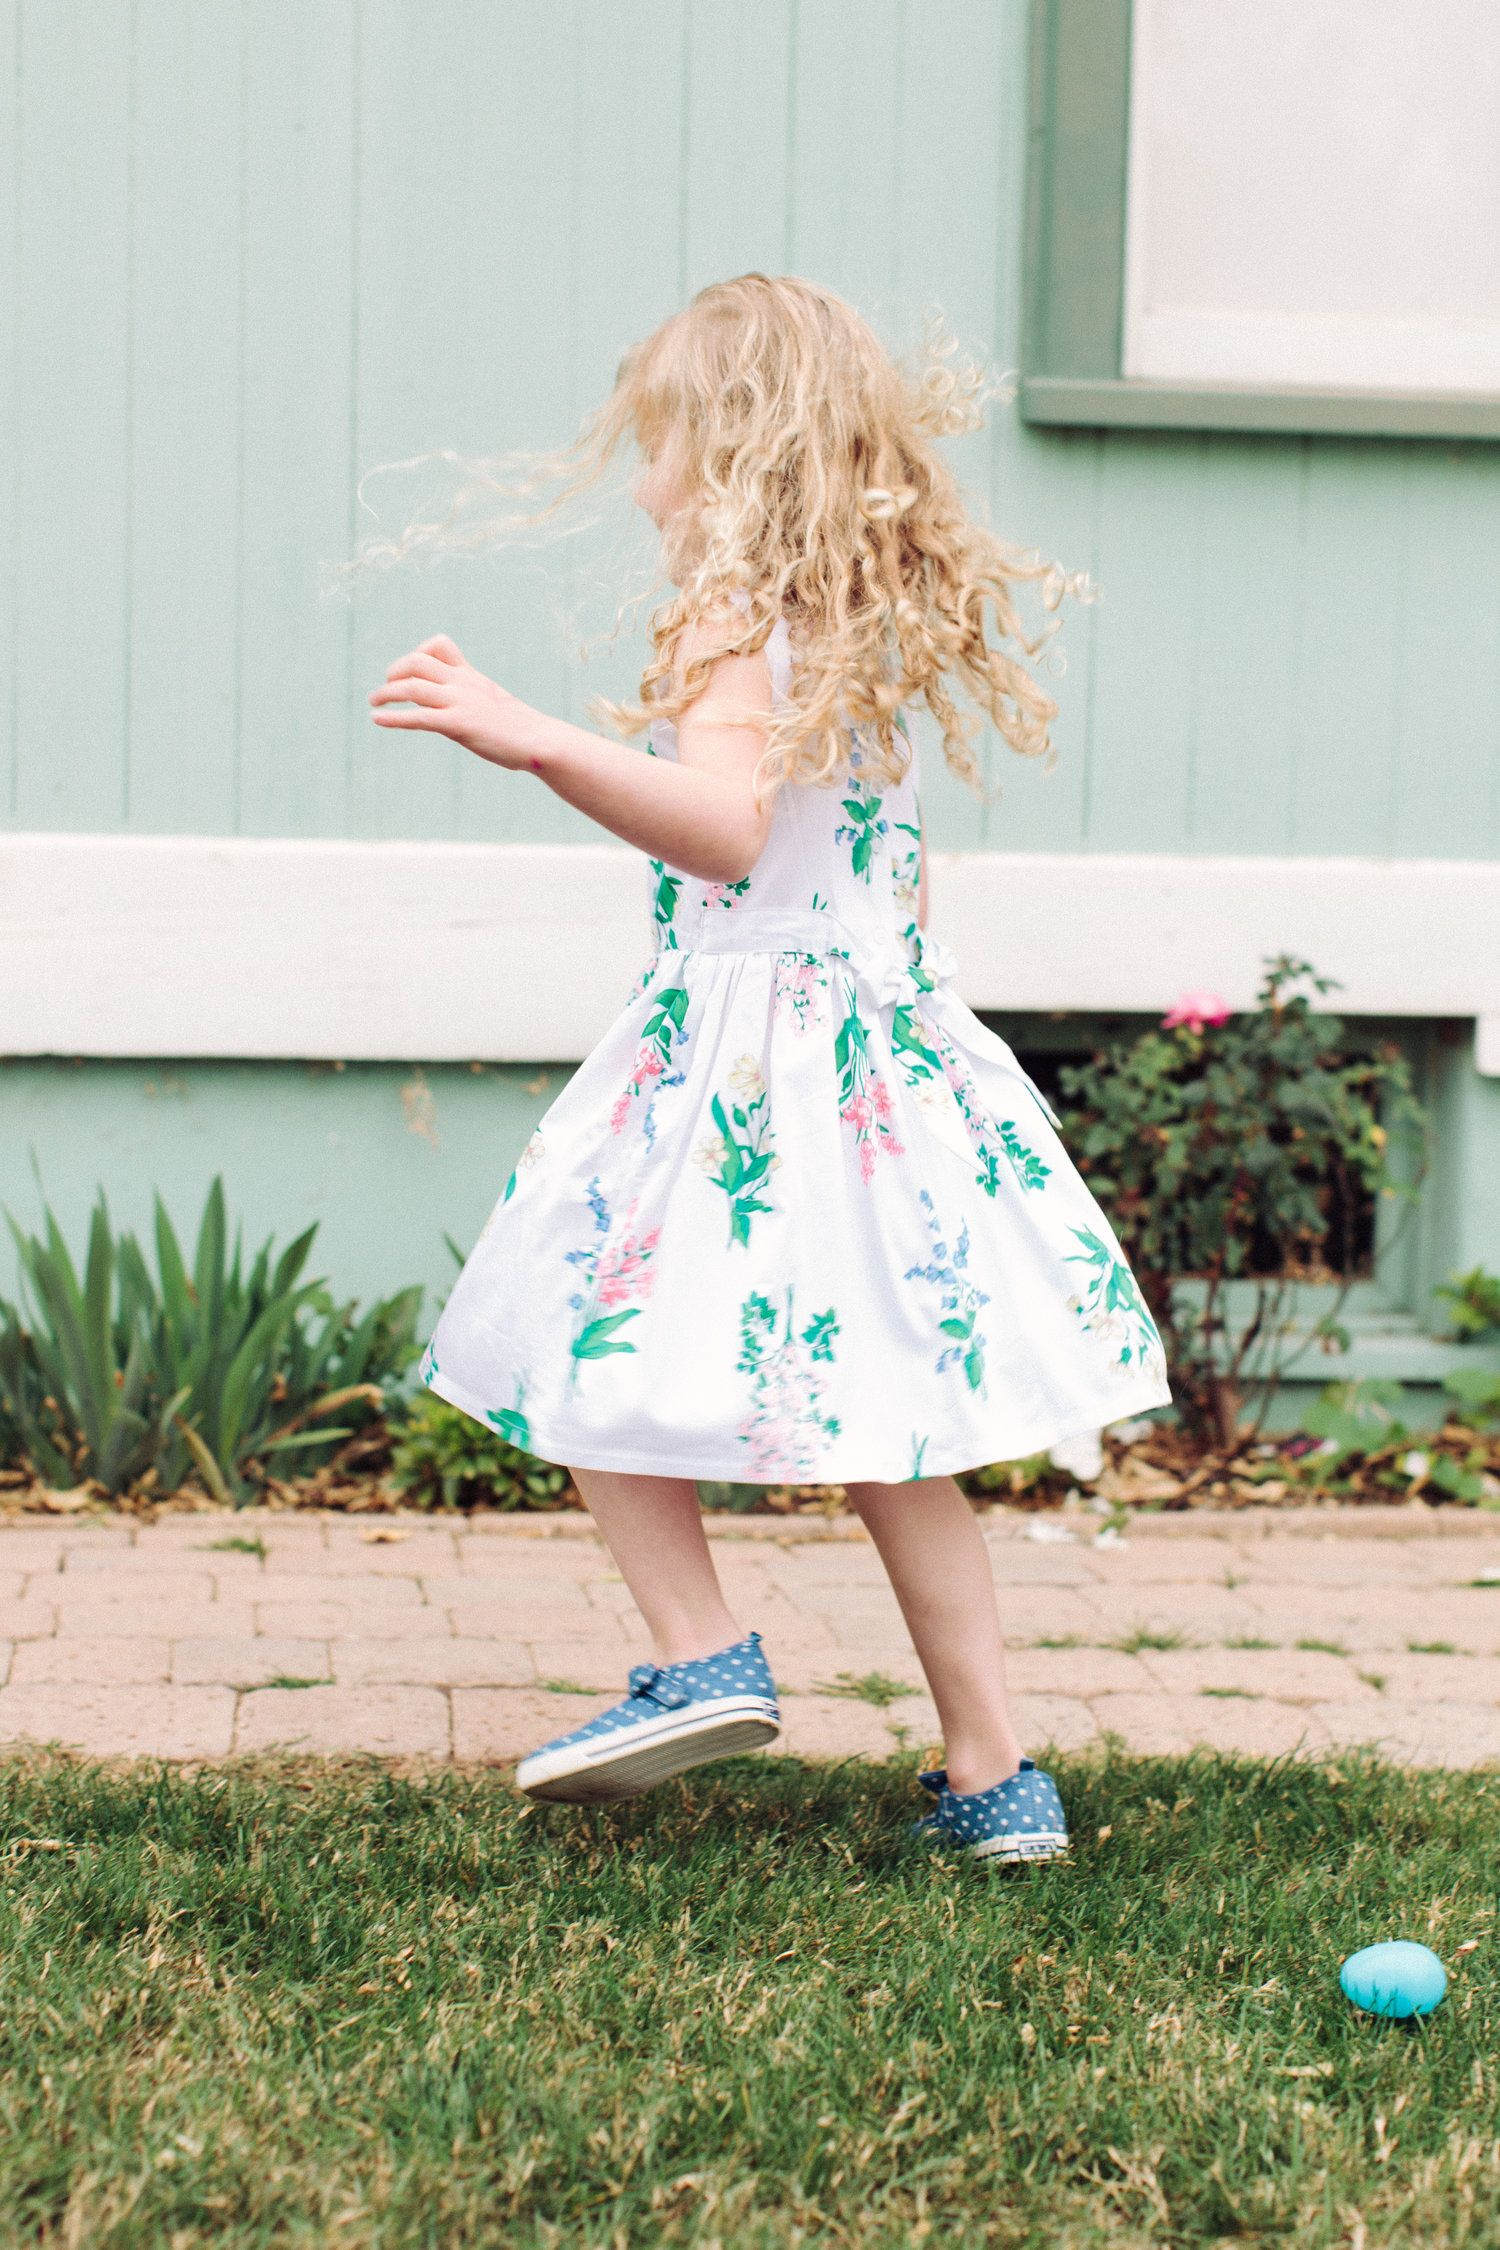 sweet, white lilac printed dress with chambray shoes / a cute outfit for Easter and spring all from @carters #lovecarters #sponsored